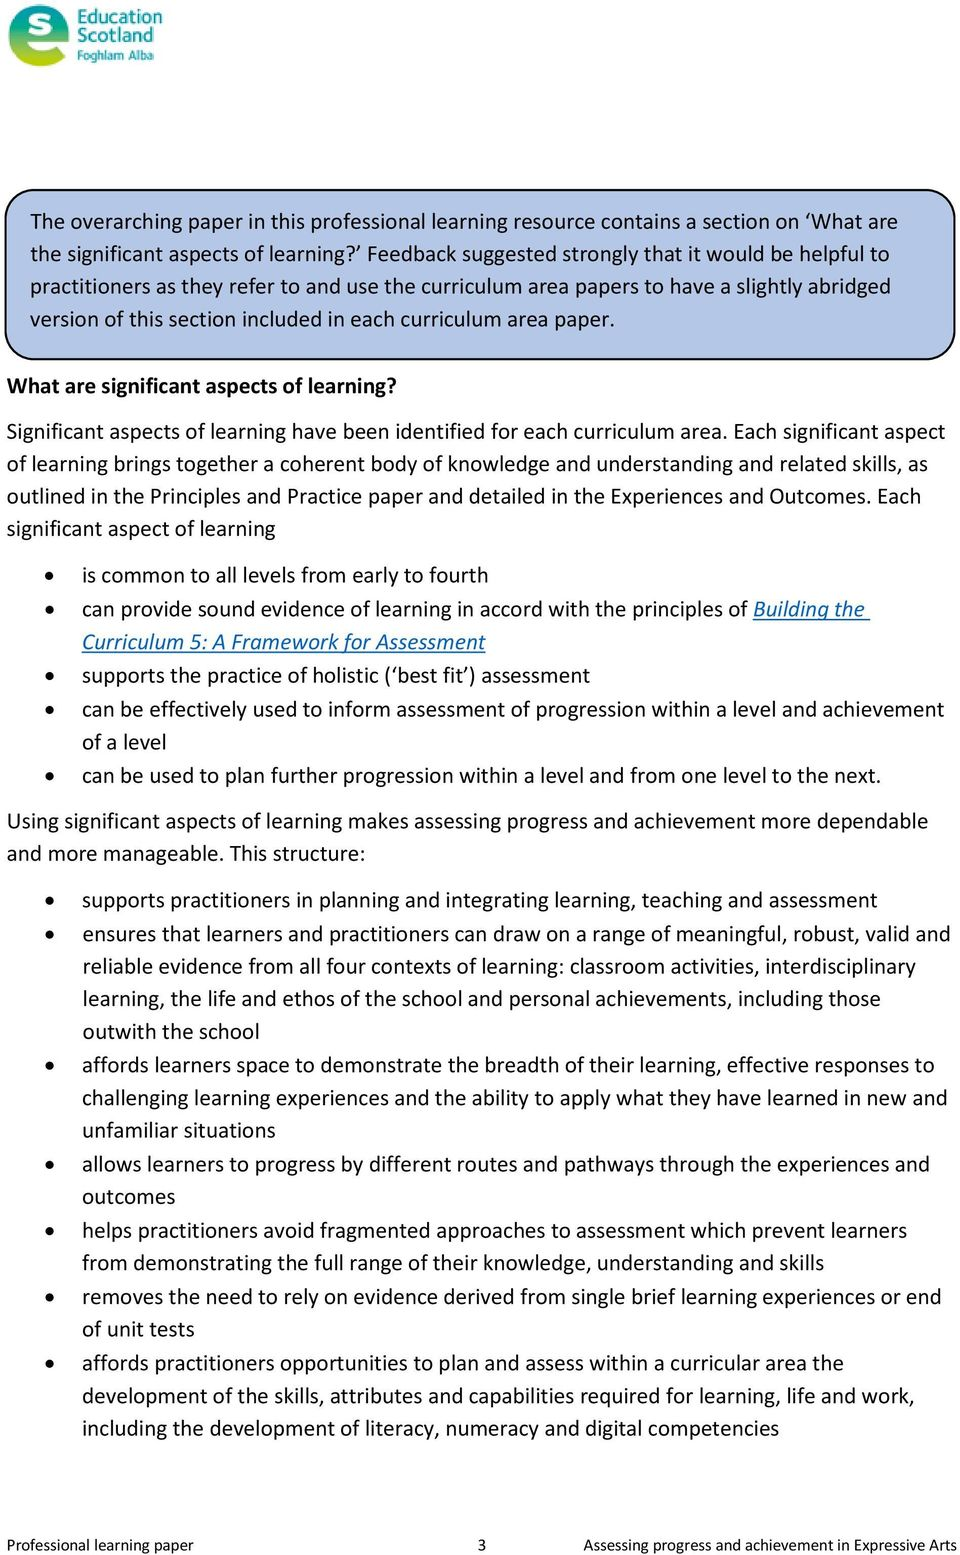 curriculum area paper. What are significant aspects of learning? Significant aspects of learning have been identified for each curriculum area.